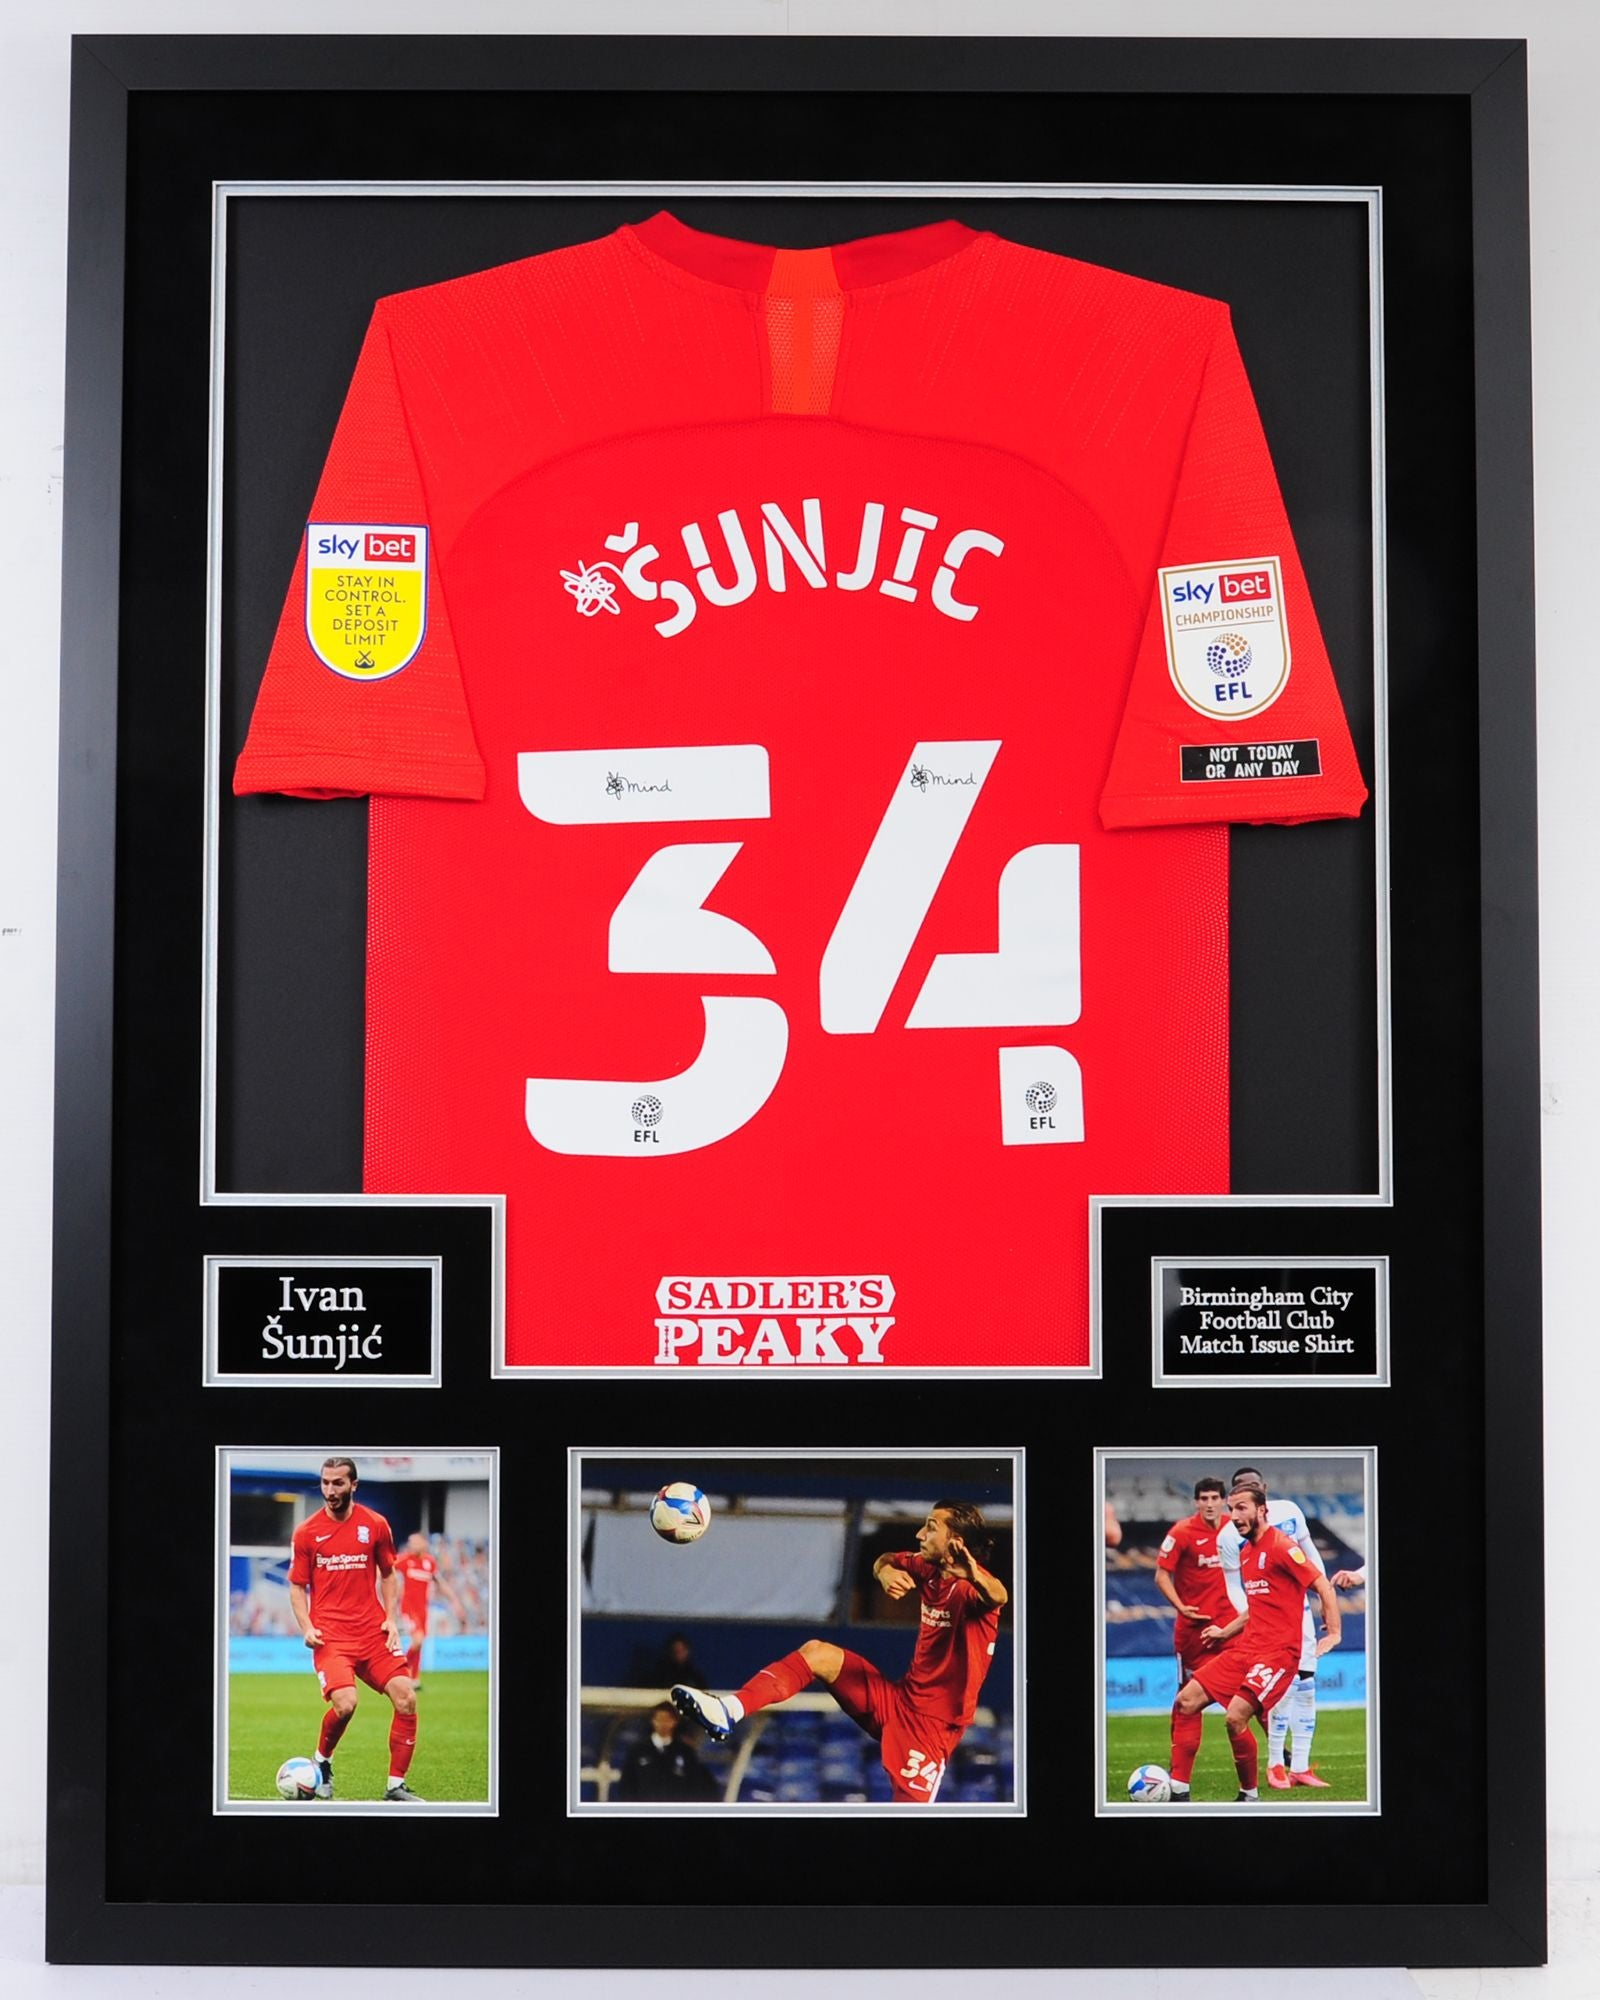 Ivan Sunjic Framed Match Issue Shirt - Buy before Monday for Pre Xmas delivery.